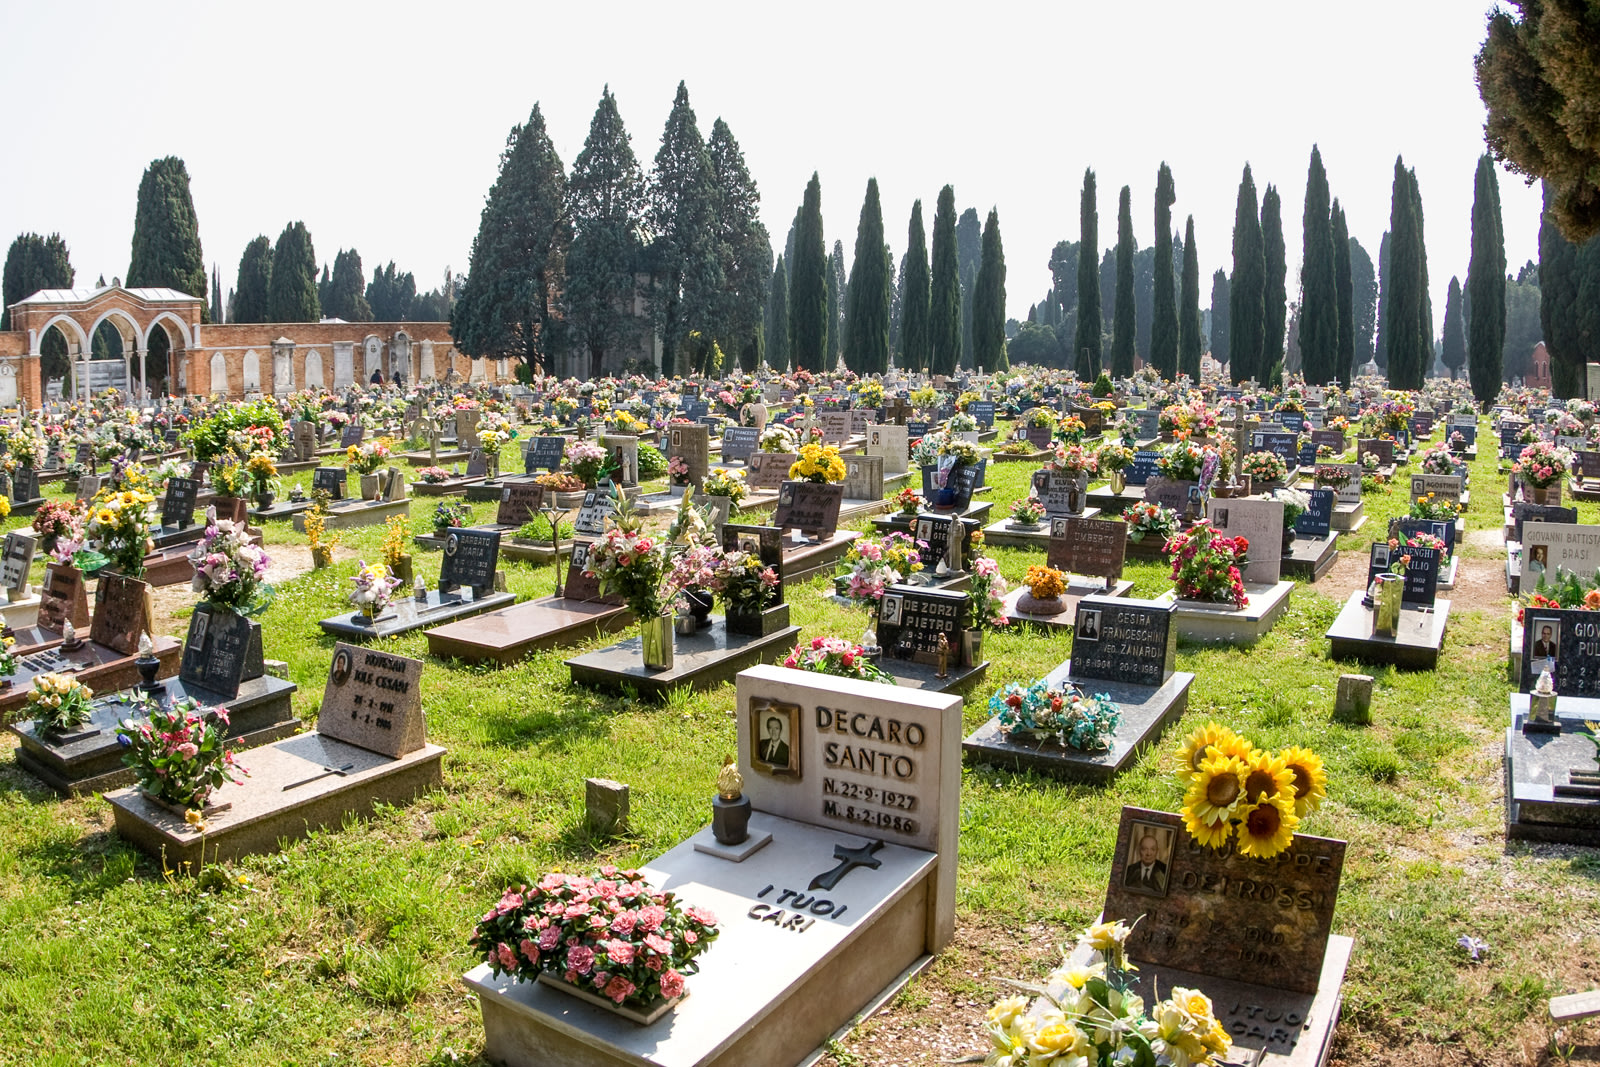 Headstones adorned with flowers in the Isola di San Michele cemetery in Venice, Italy; graveyard; tombstone.